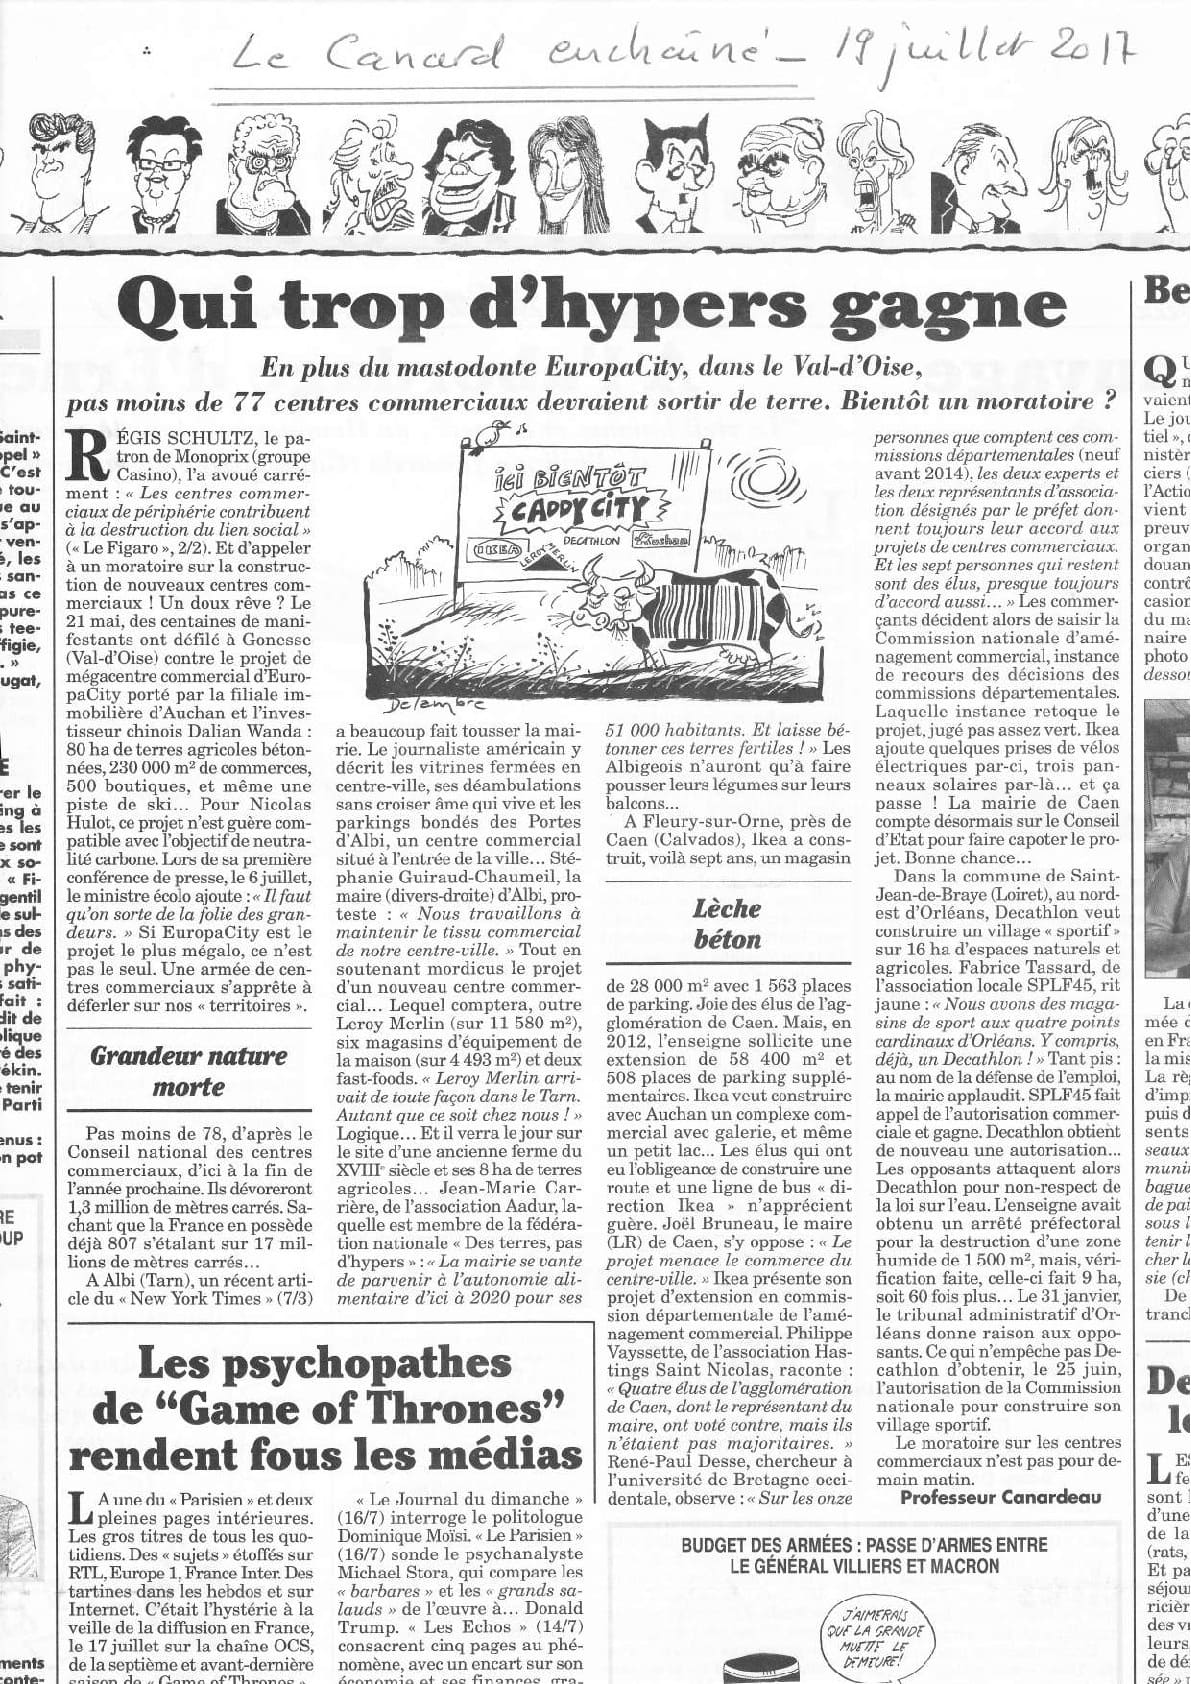 article Canard Enchainé